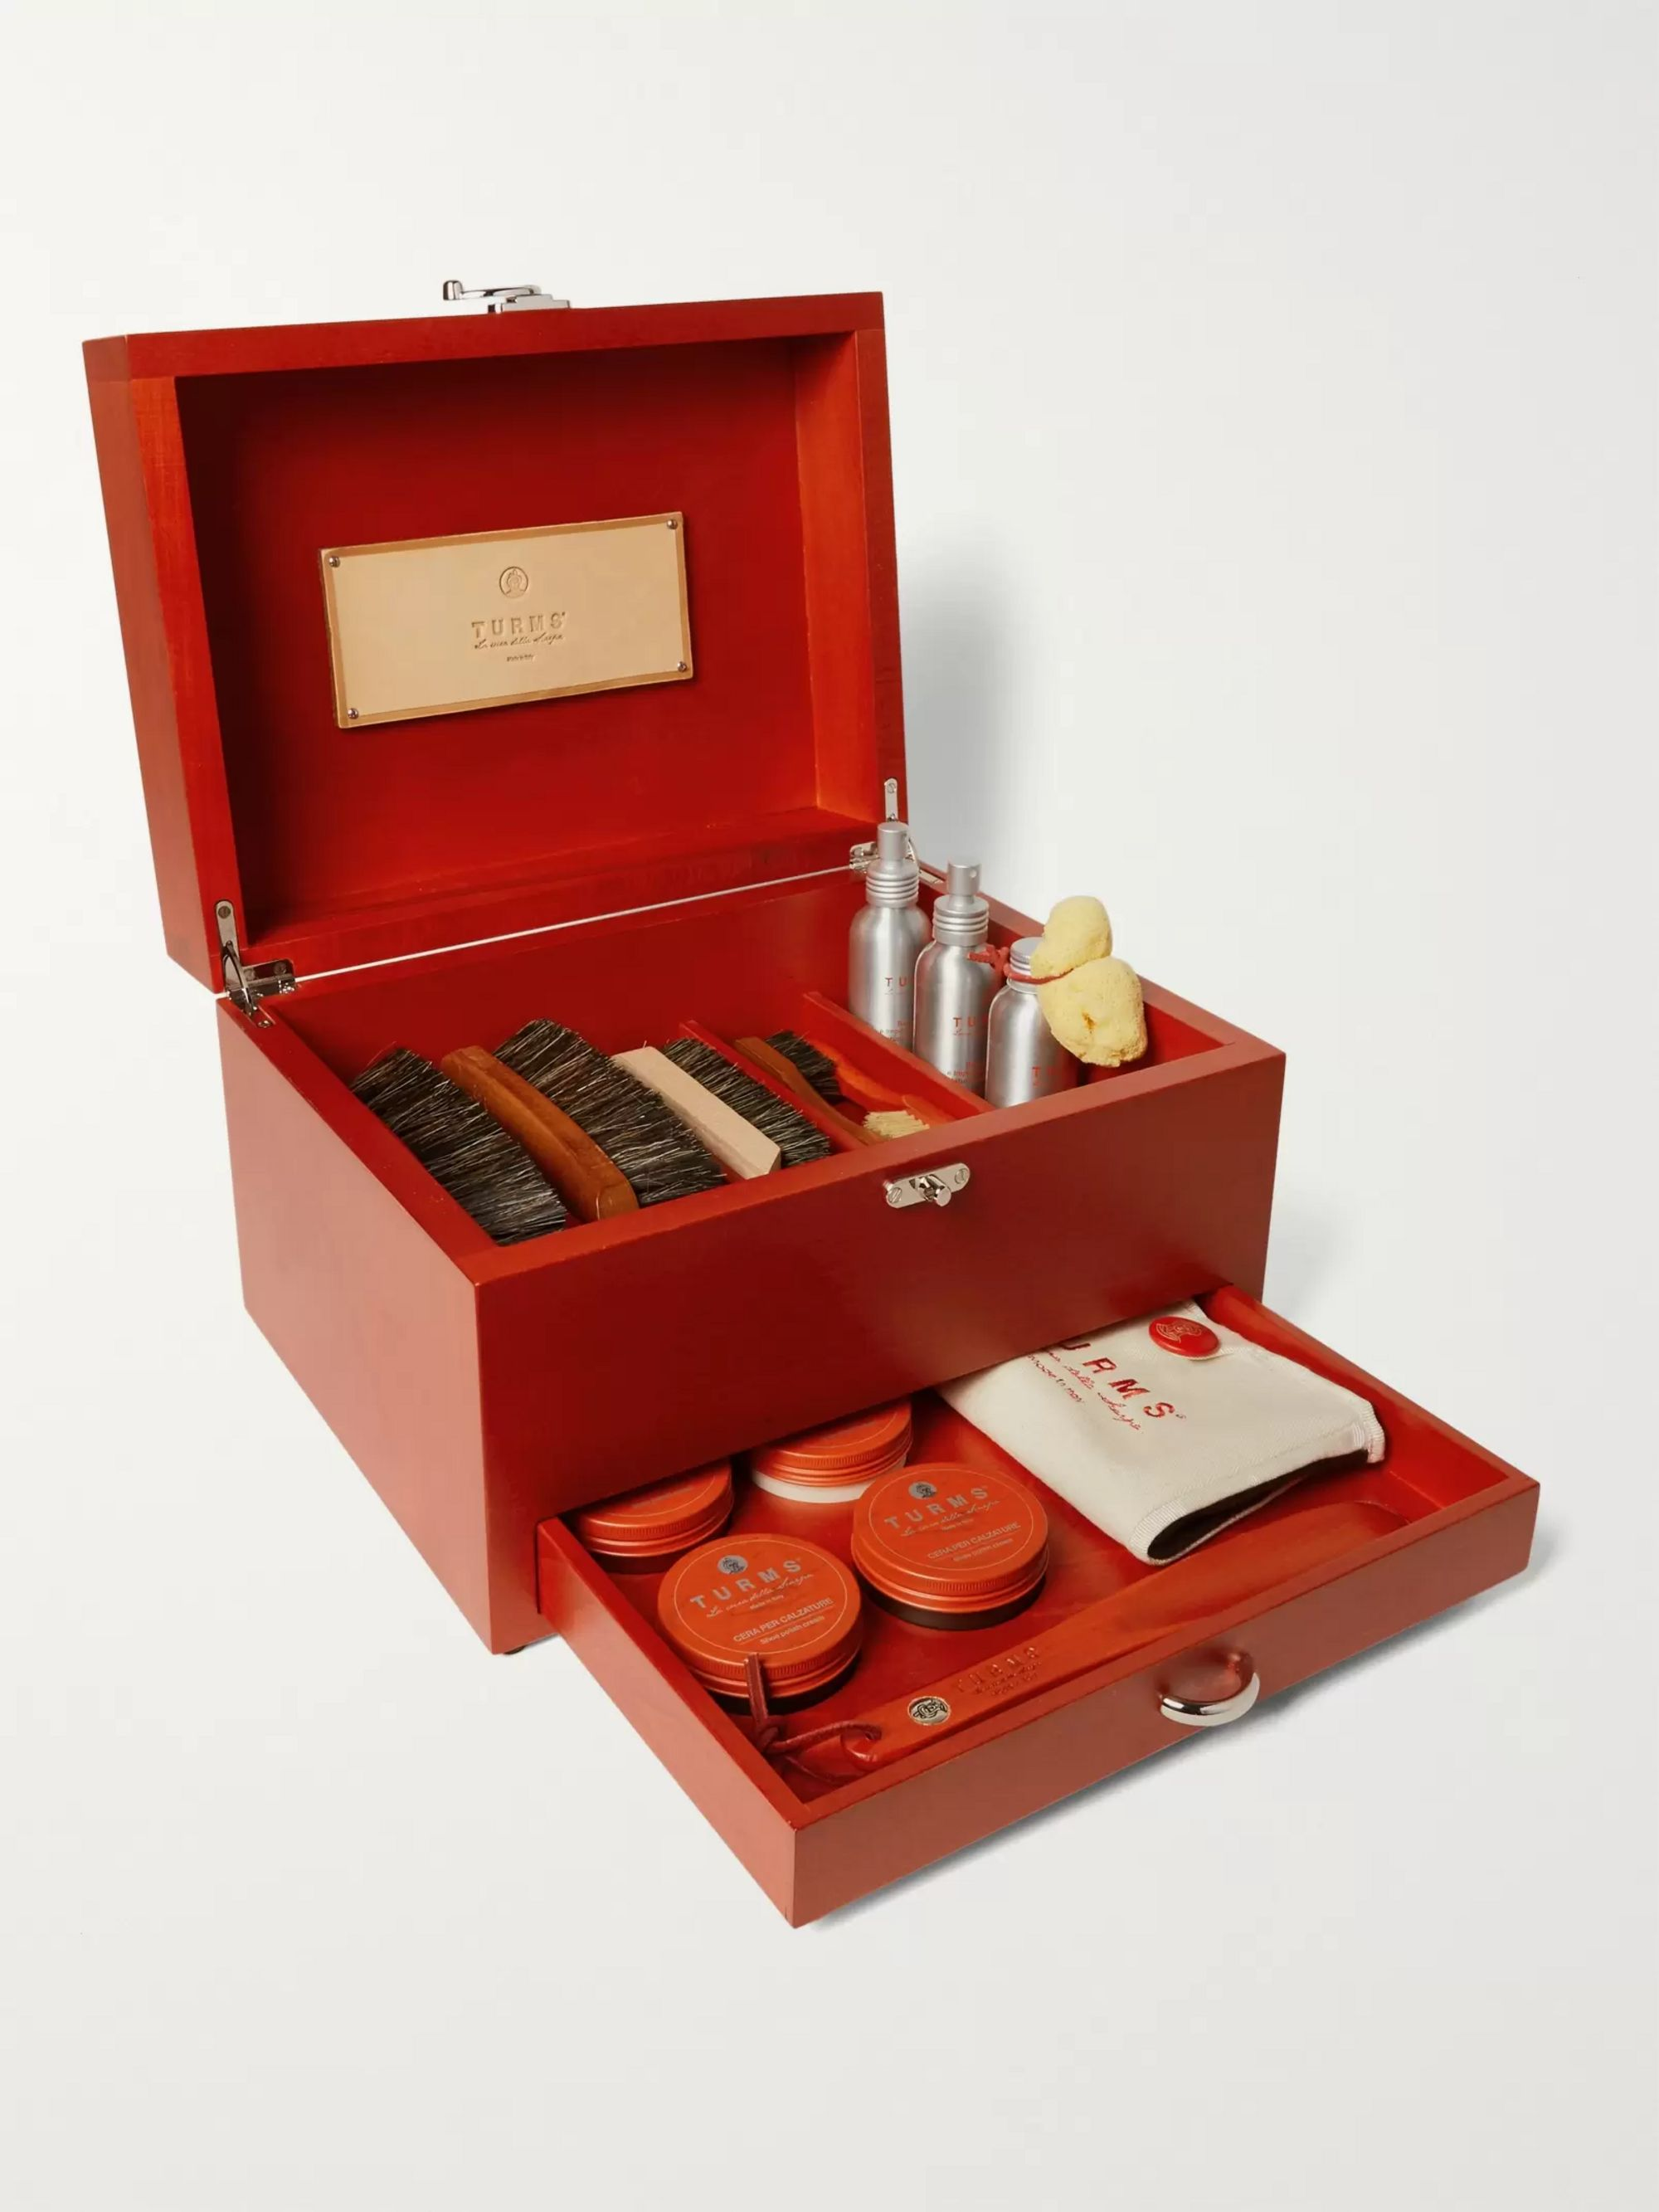 Turms Complete Shoe Care Kit with Wood Case